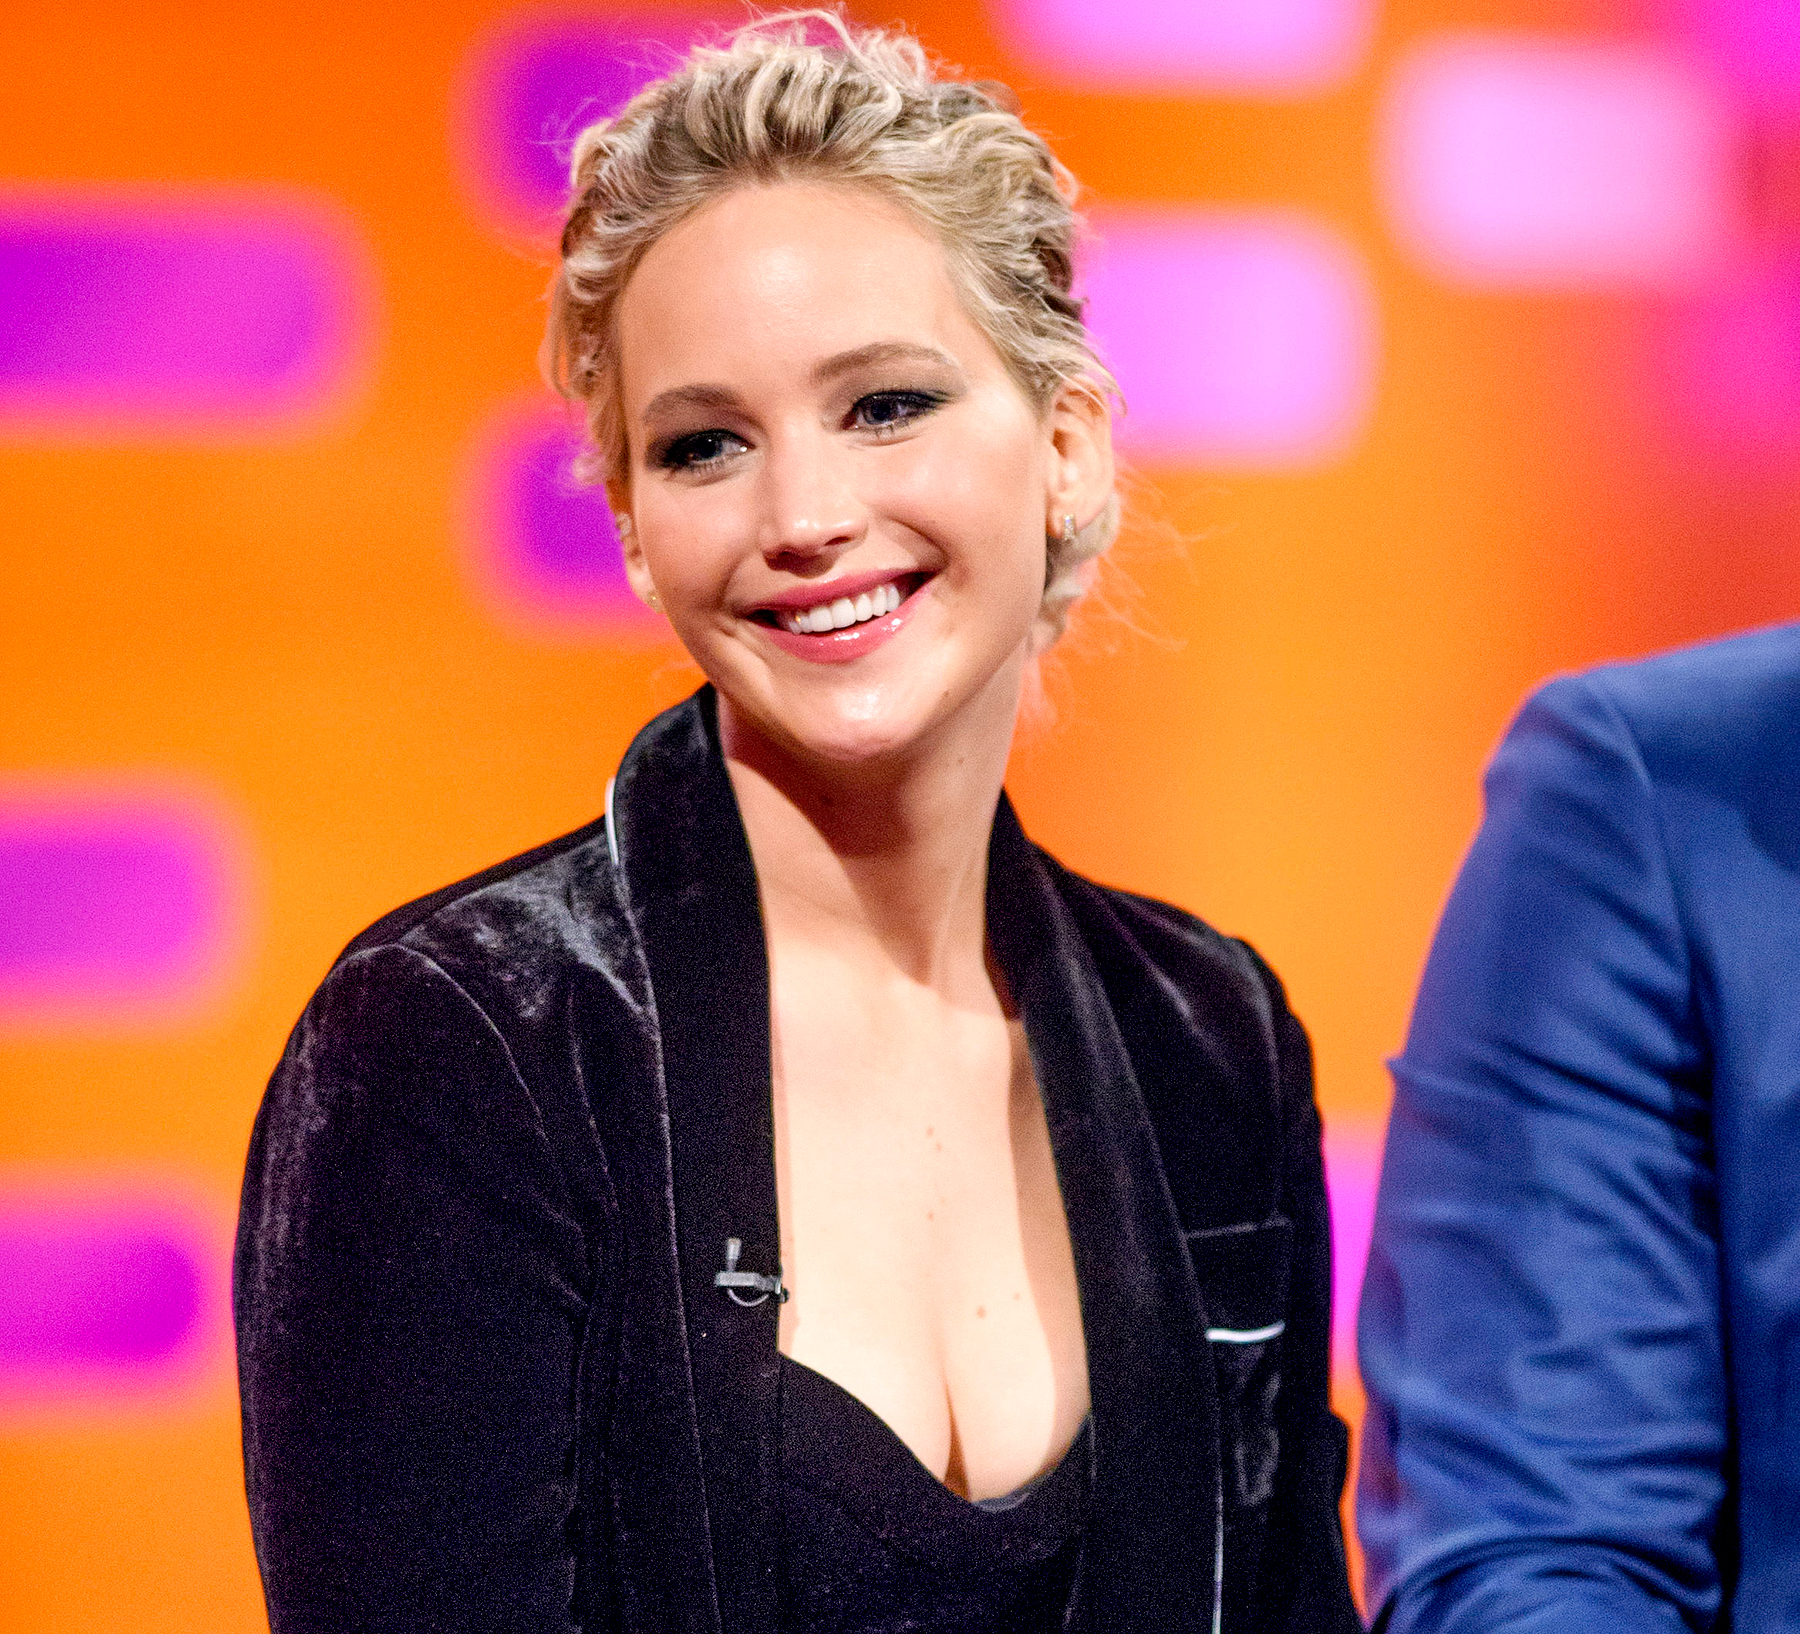 Jennifer Lawrence on the Graham Norton Show at The London Studios in December 2016.